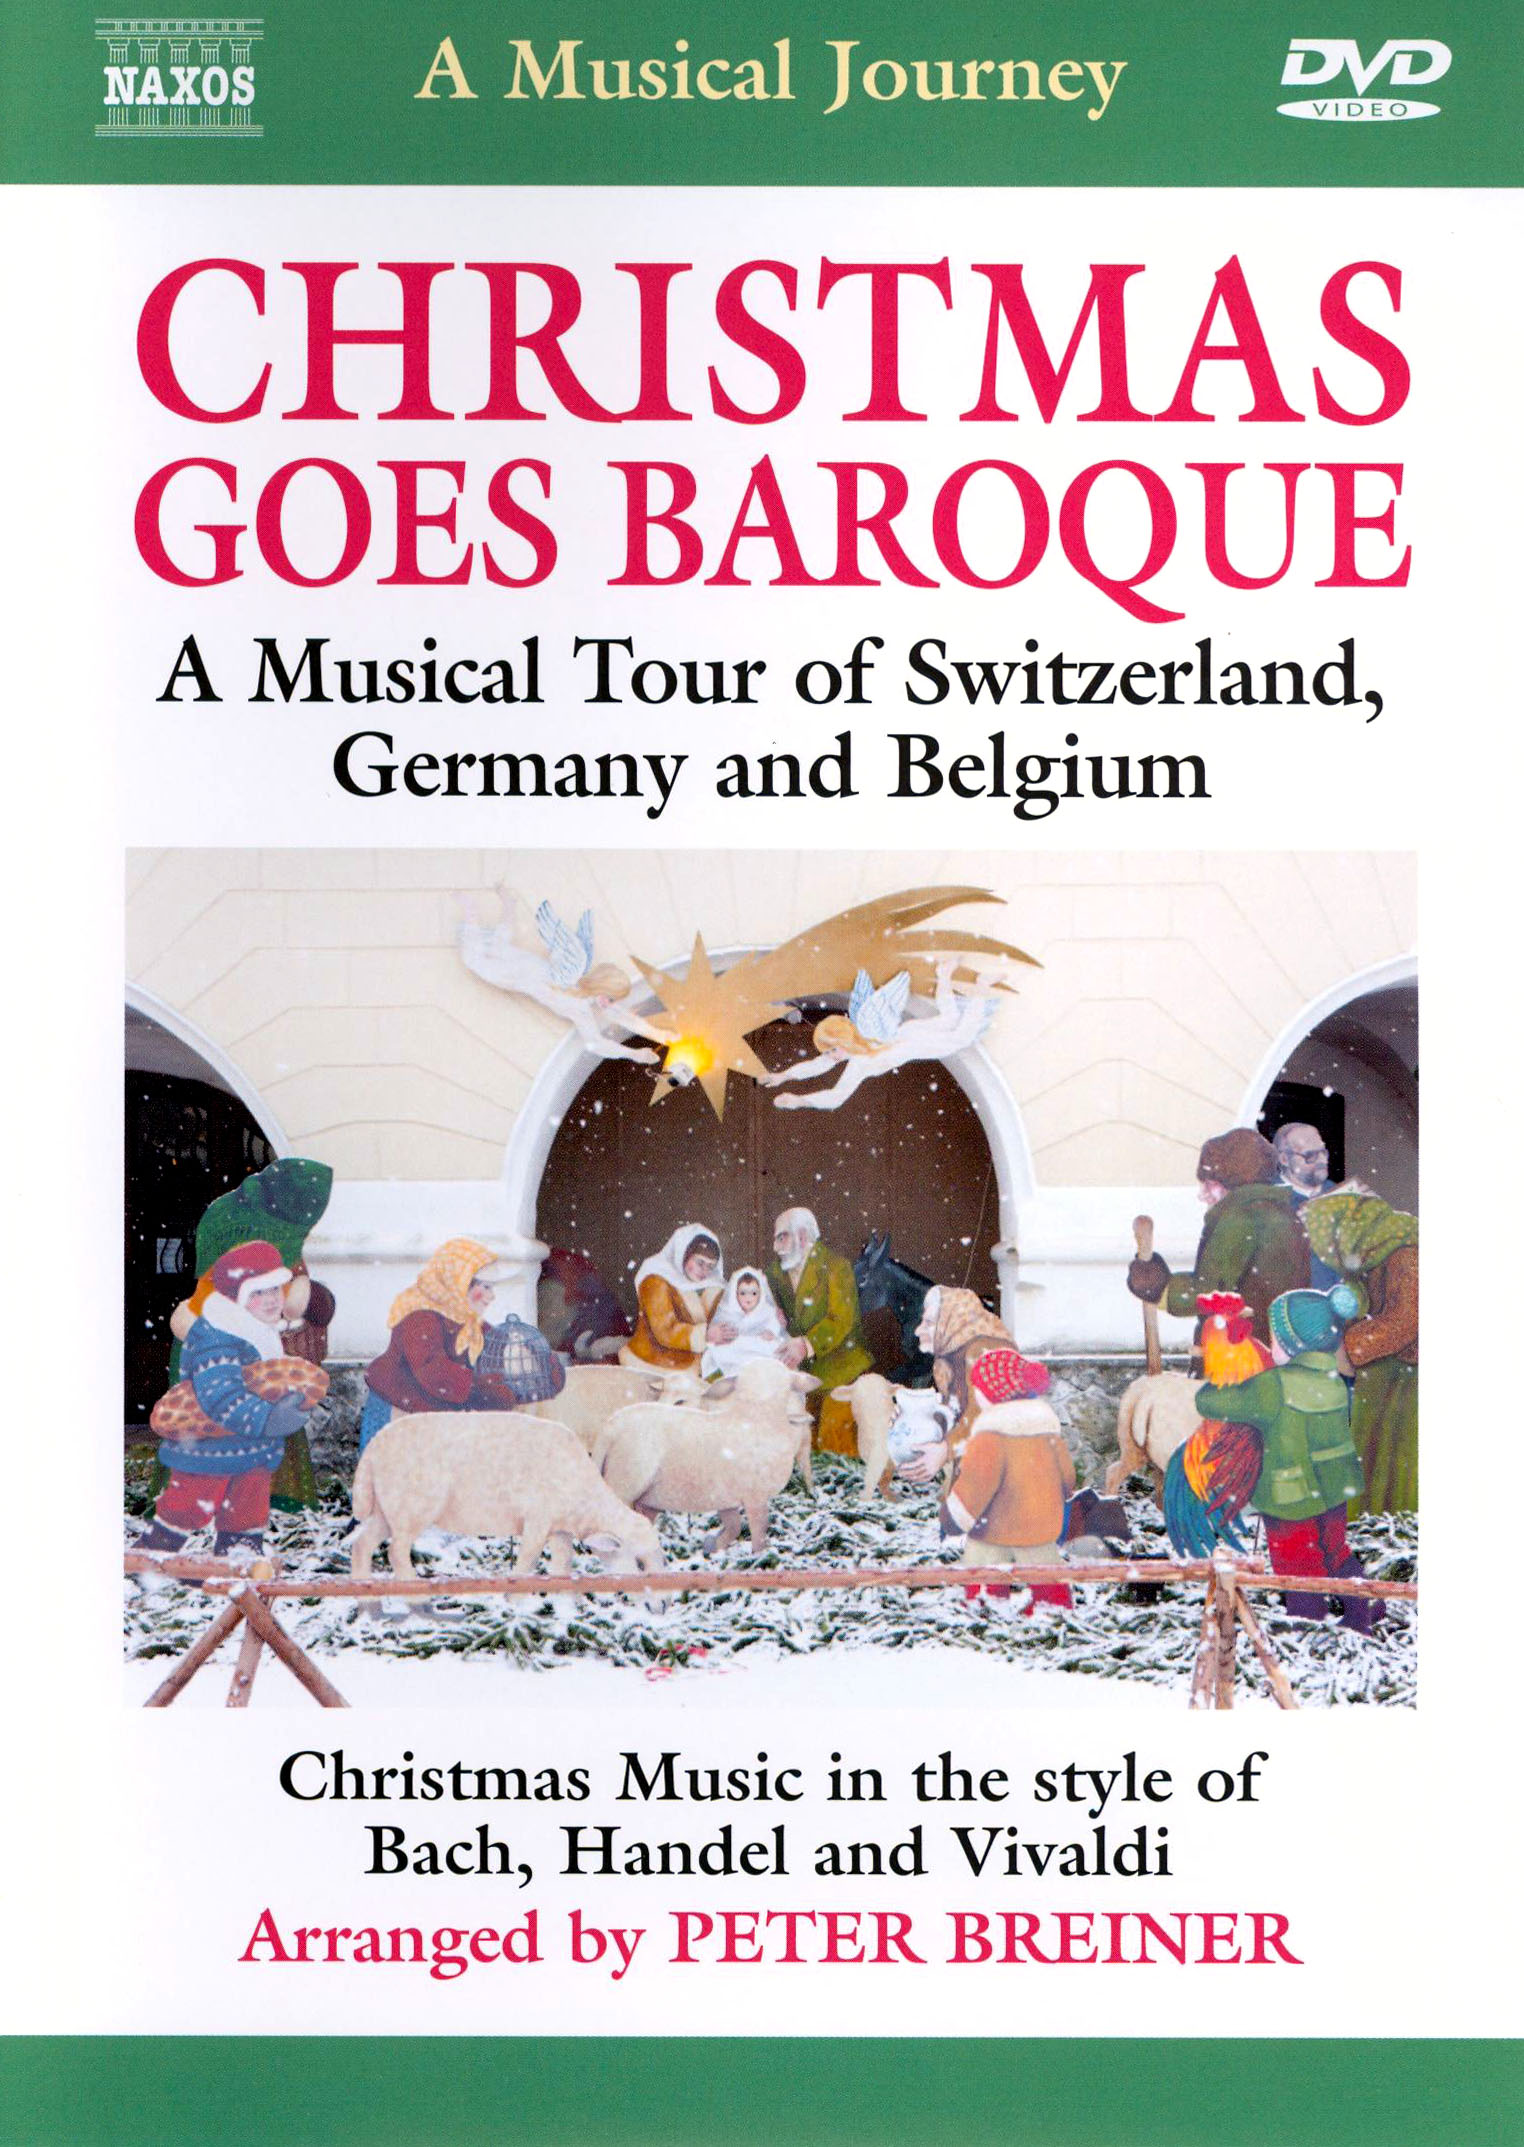 A Musical Journey: Christmas Goes Baroque - A Musical Tour of Switzerland, Germany and Belgium